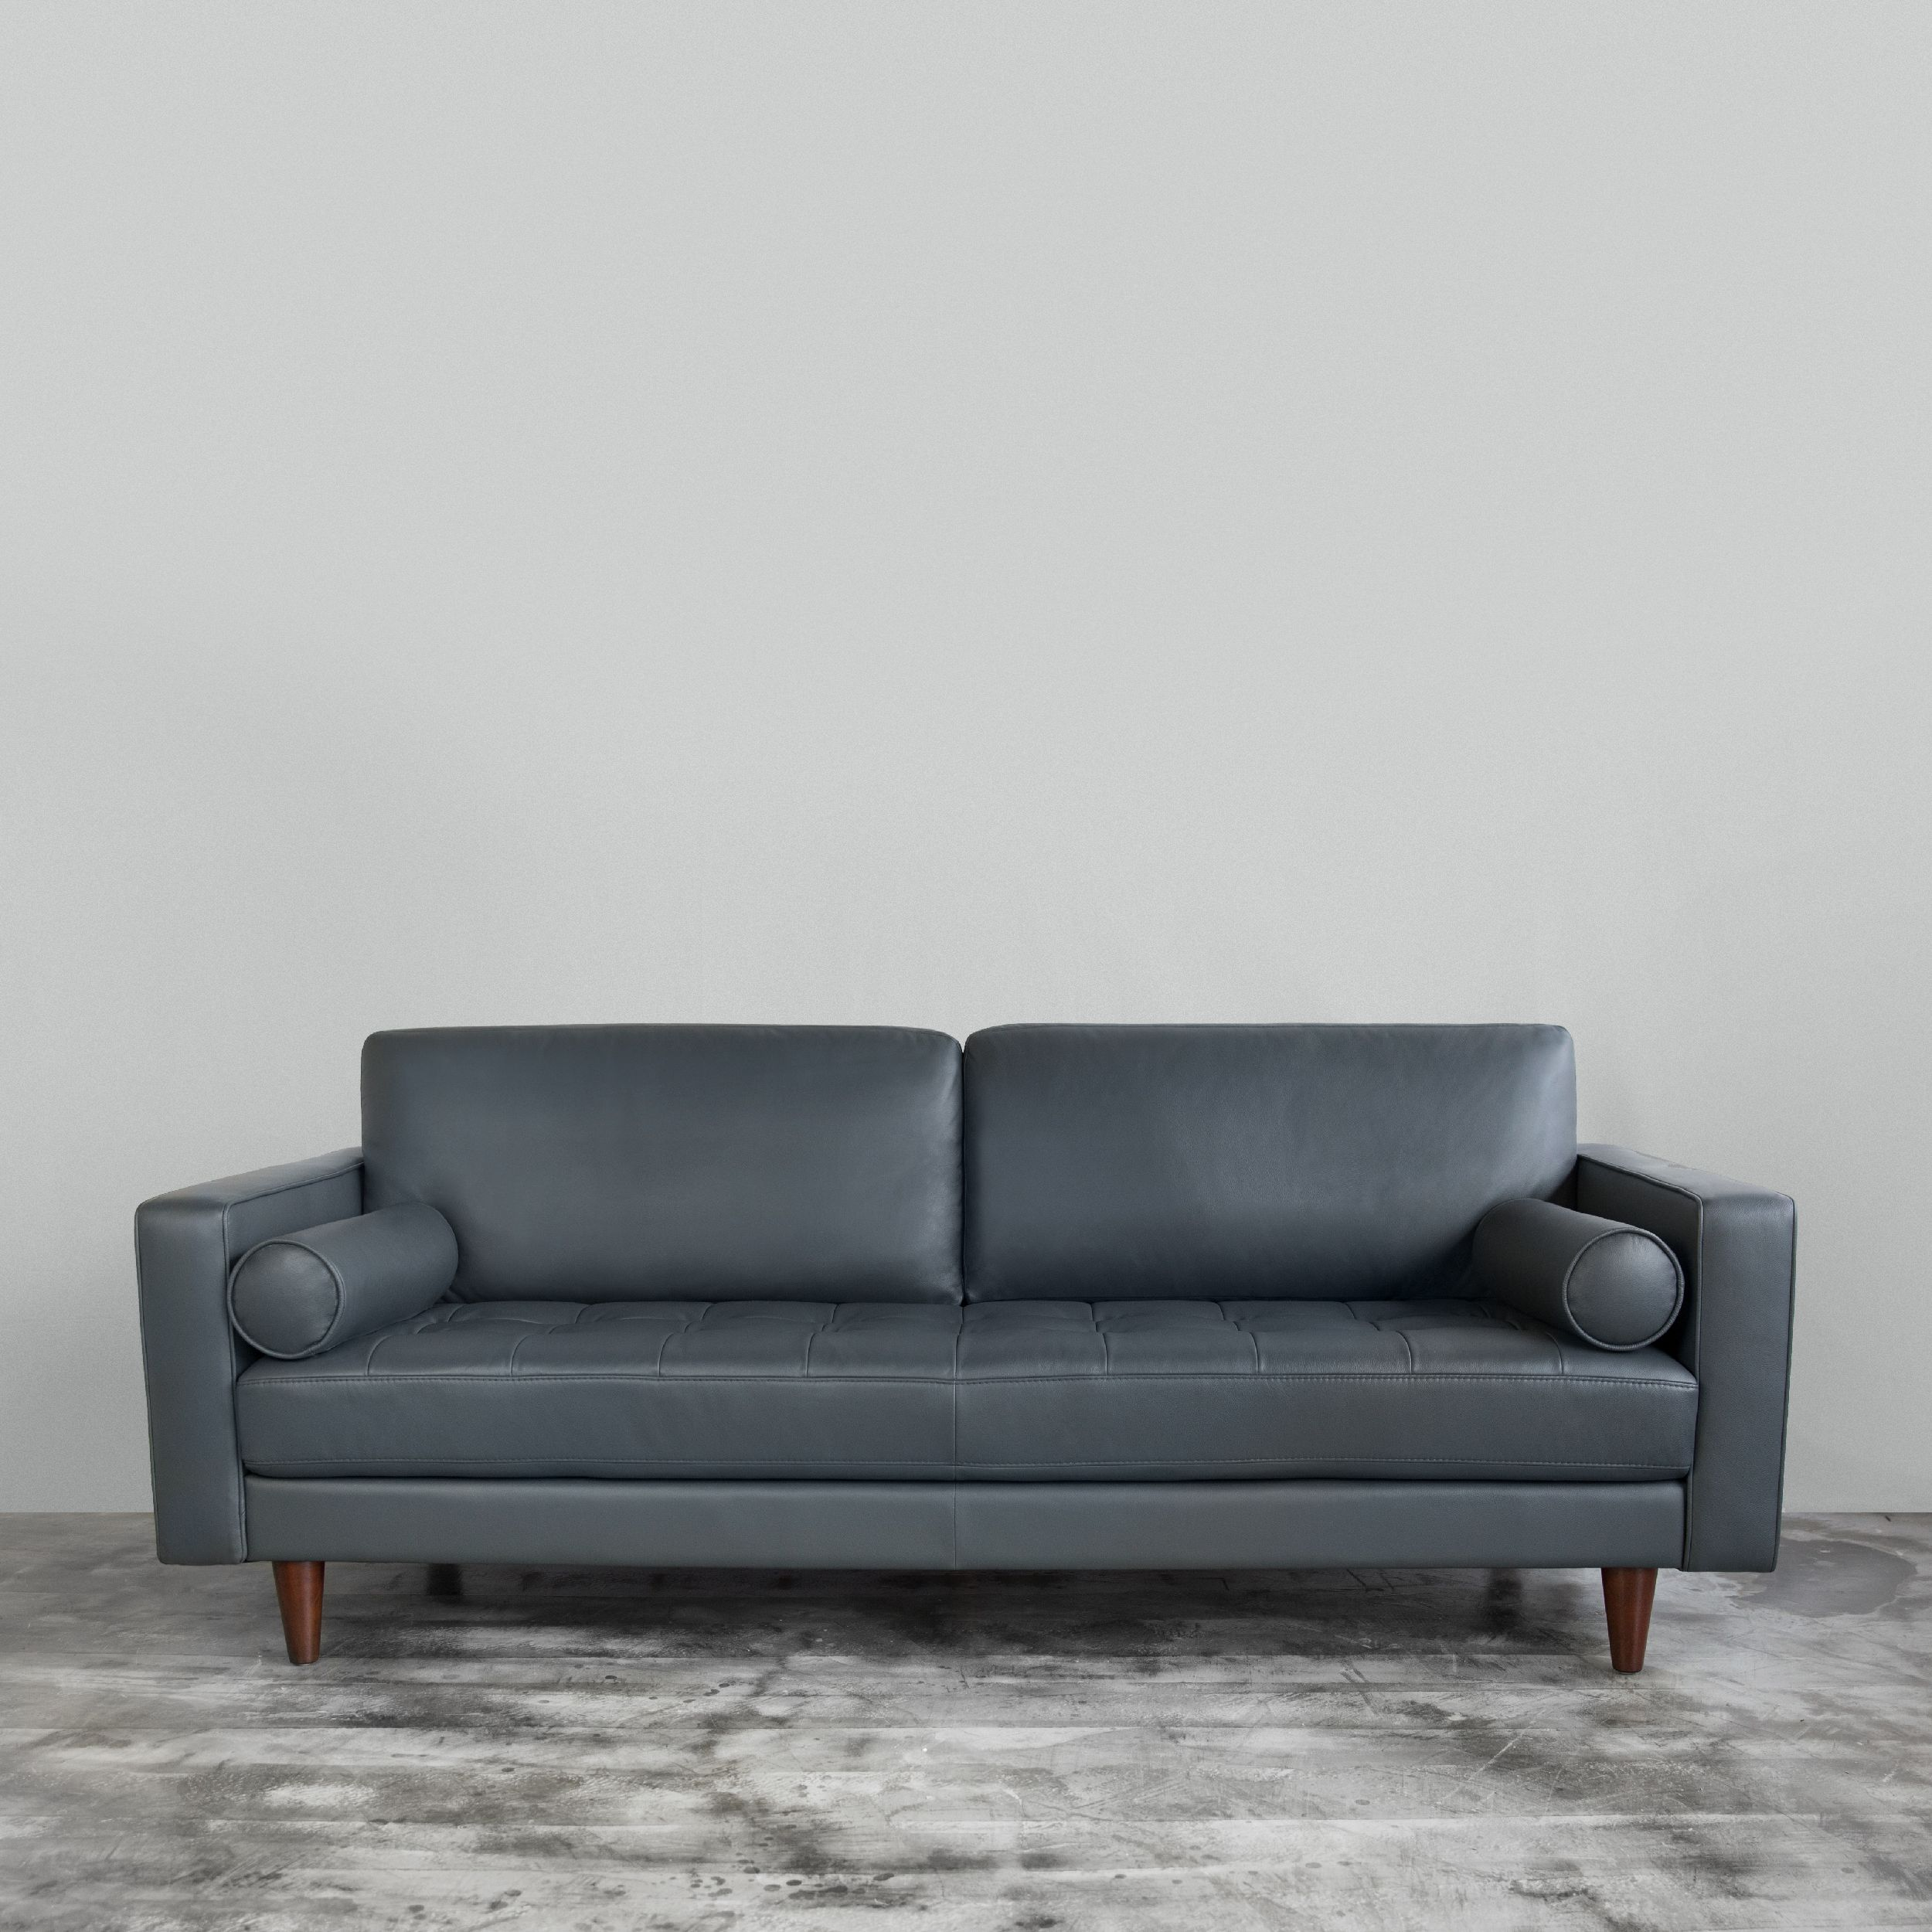 Curtis Sofa All Our Sofas Are Built With A Kiln Dried Hardwood Frame For Sturdiness And Durability Furniture Design Customizable Furniture Custom Furniture